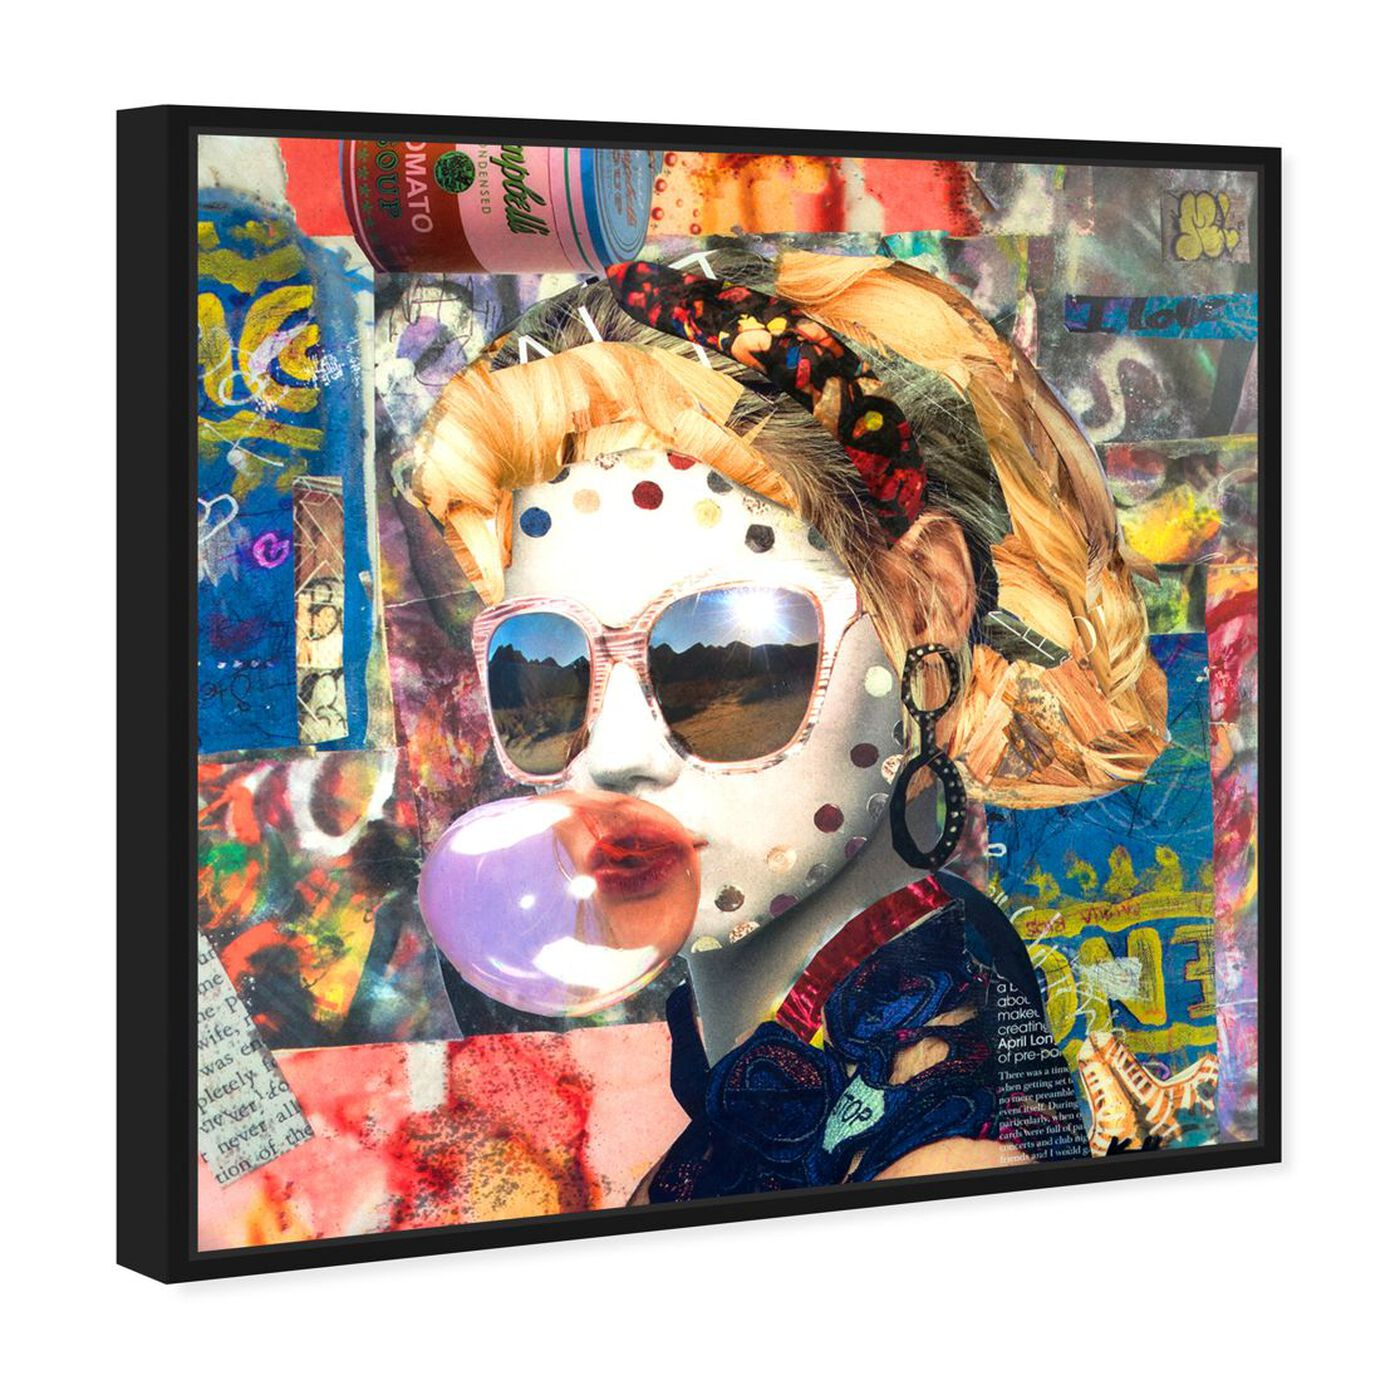 Angled view of Katy Hirschfeld - Bubblegum featuring fashion and glam and portraits art.